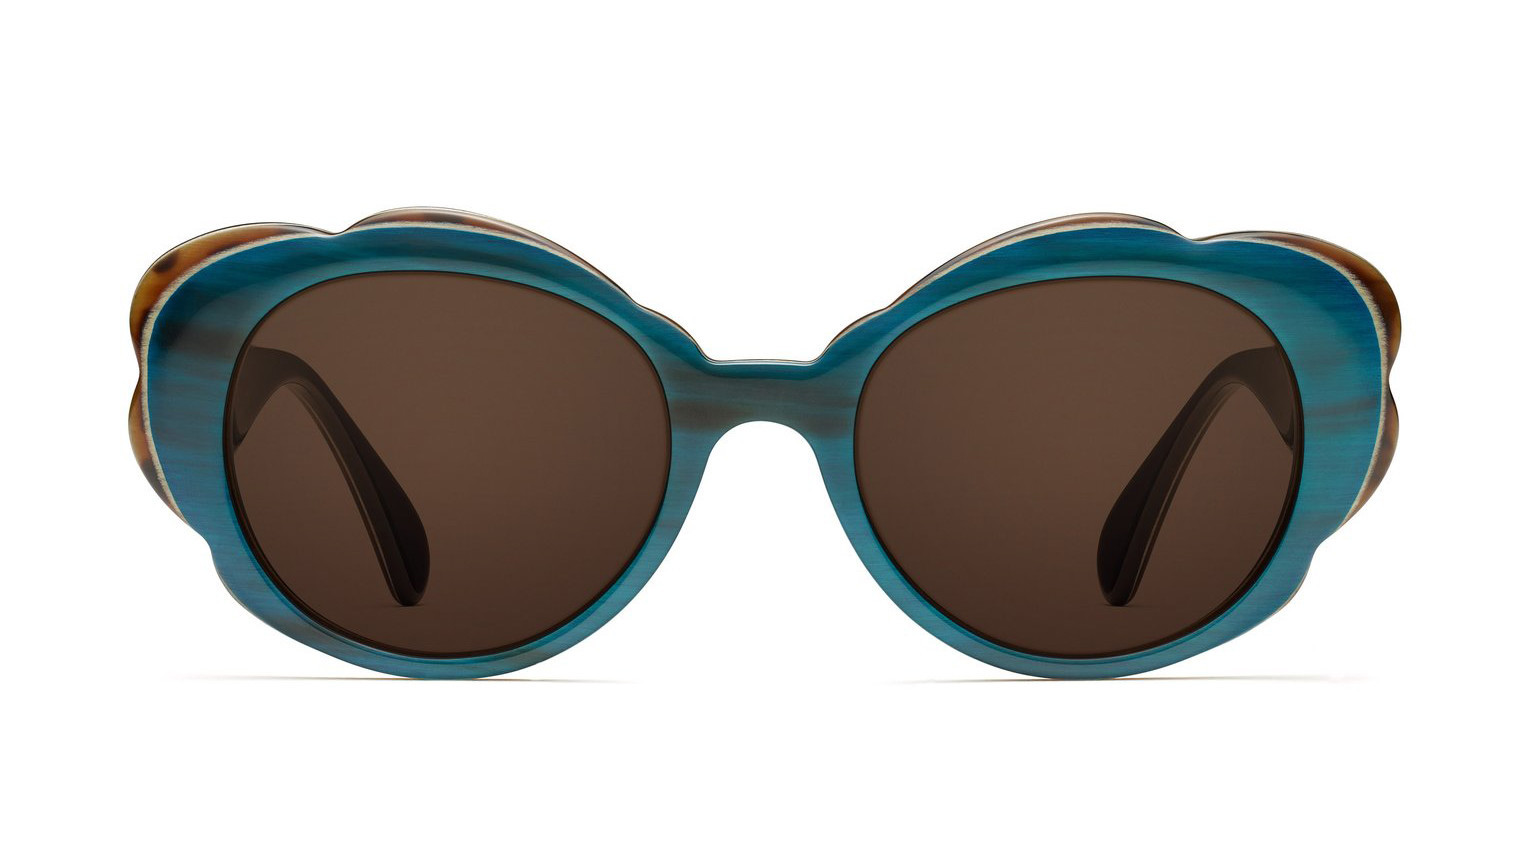 Morgenthal Frederics handcrafted, laminated teal and spotty tortoise buffalo horn Rosemary sunglasse